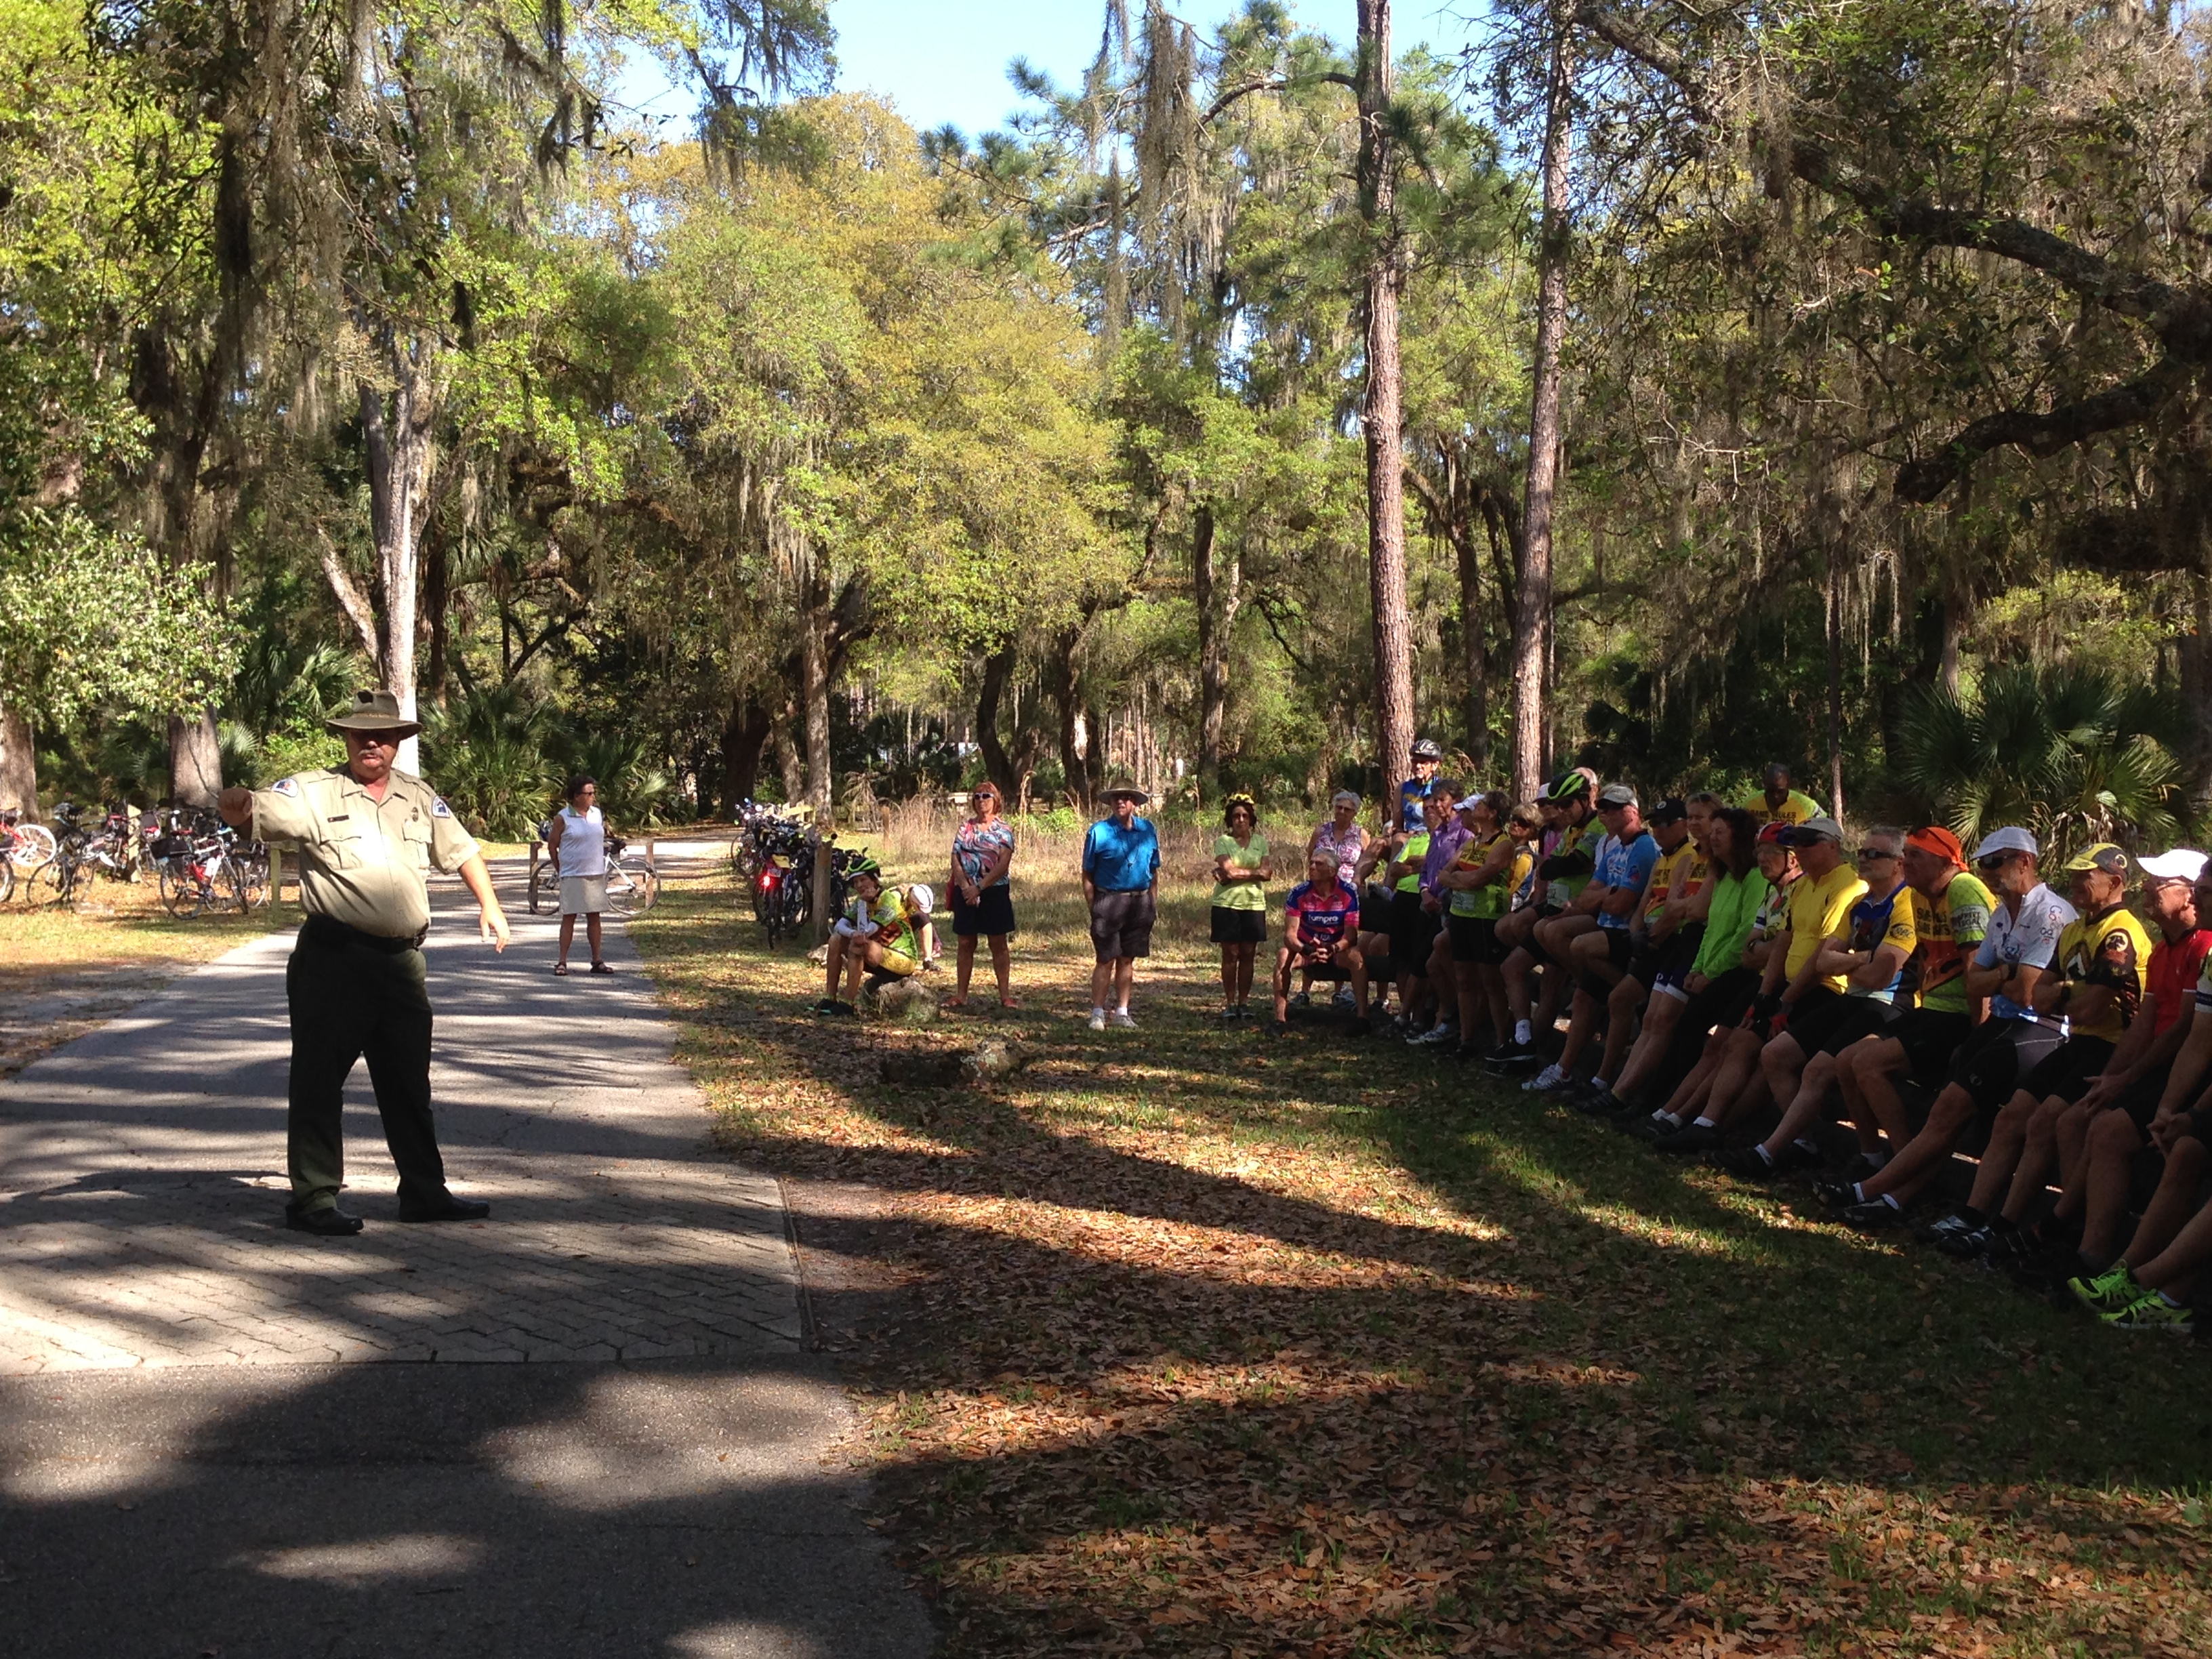 At the Dade Battlefield, listening to history lesson by Park Ranger.